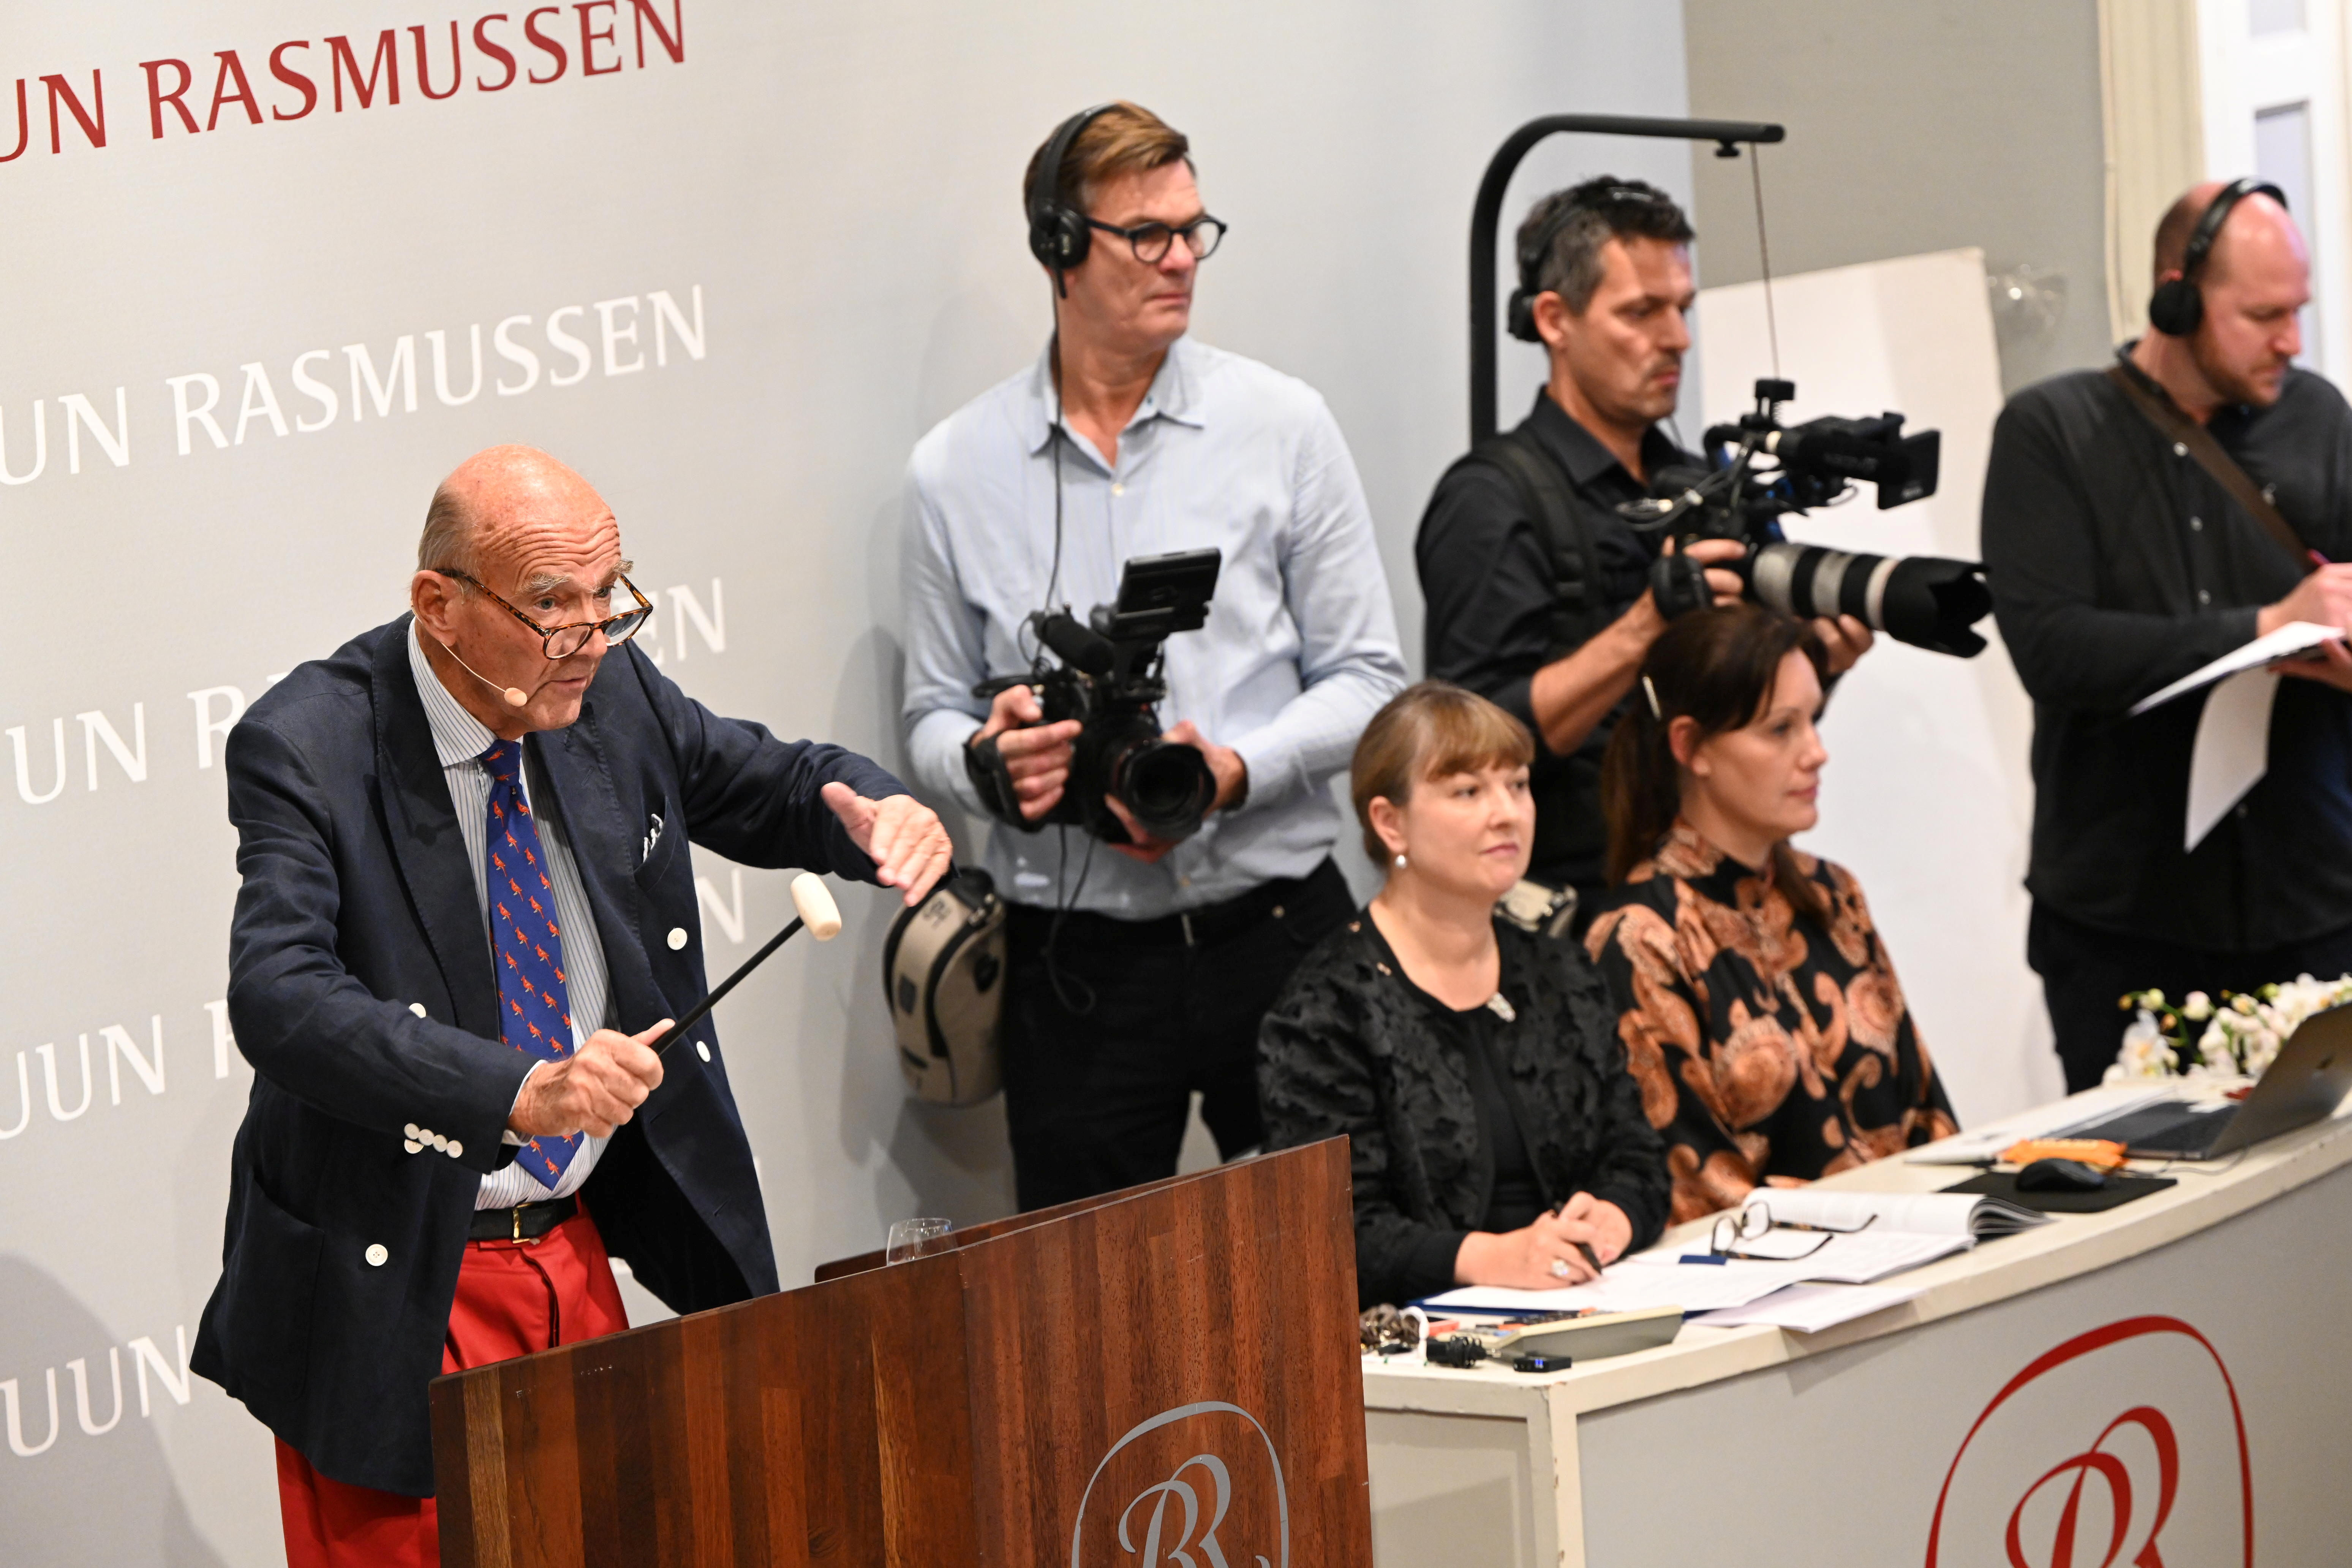 Staff auction a cassette with the recording of Danish schoolboys' interviews with John Lennon and Yoko Ono during the couple's winter stay in Thy, Jutland, Denmark in 1970 at Bruun Rasmussen Auction House in Copenhagen, Denmark, September 28, 2021. The auction includes the interviews and song